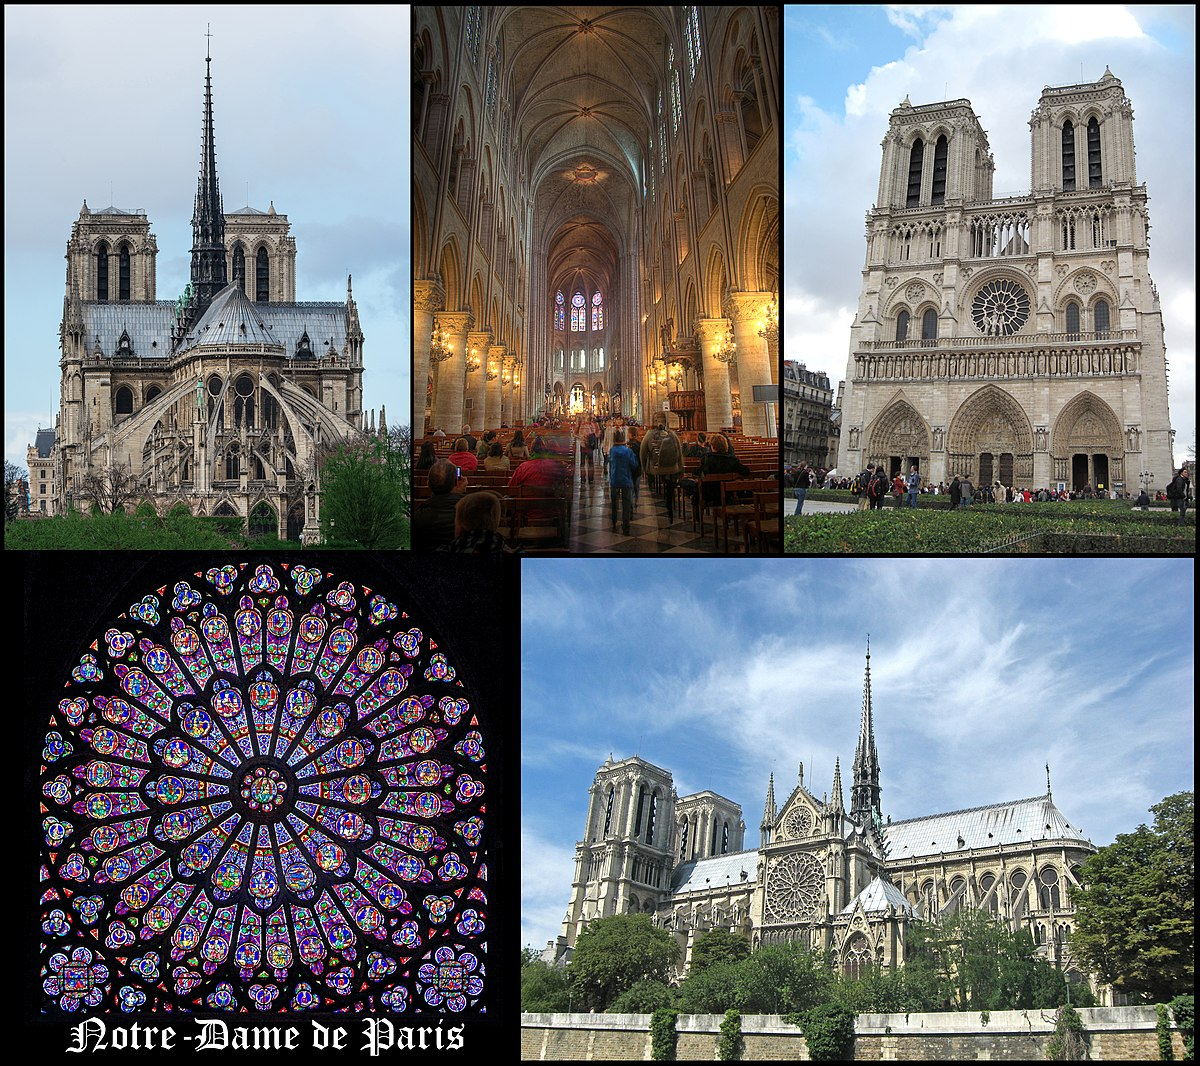 cath drale notre dame de paris wikimedia commons. Black Bedroom Furniture Sets. Home Design Ideas